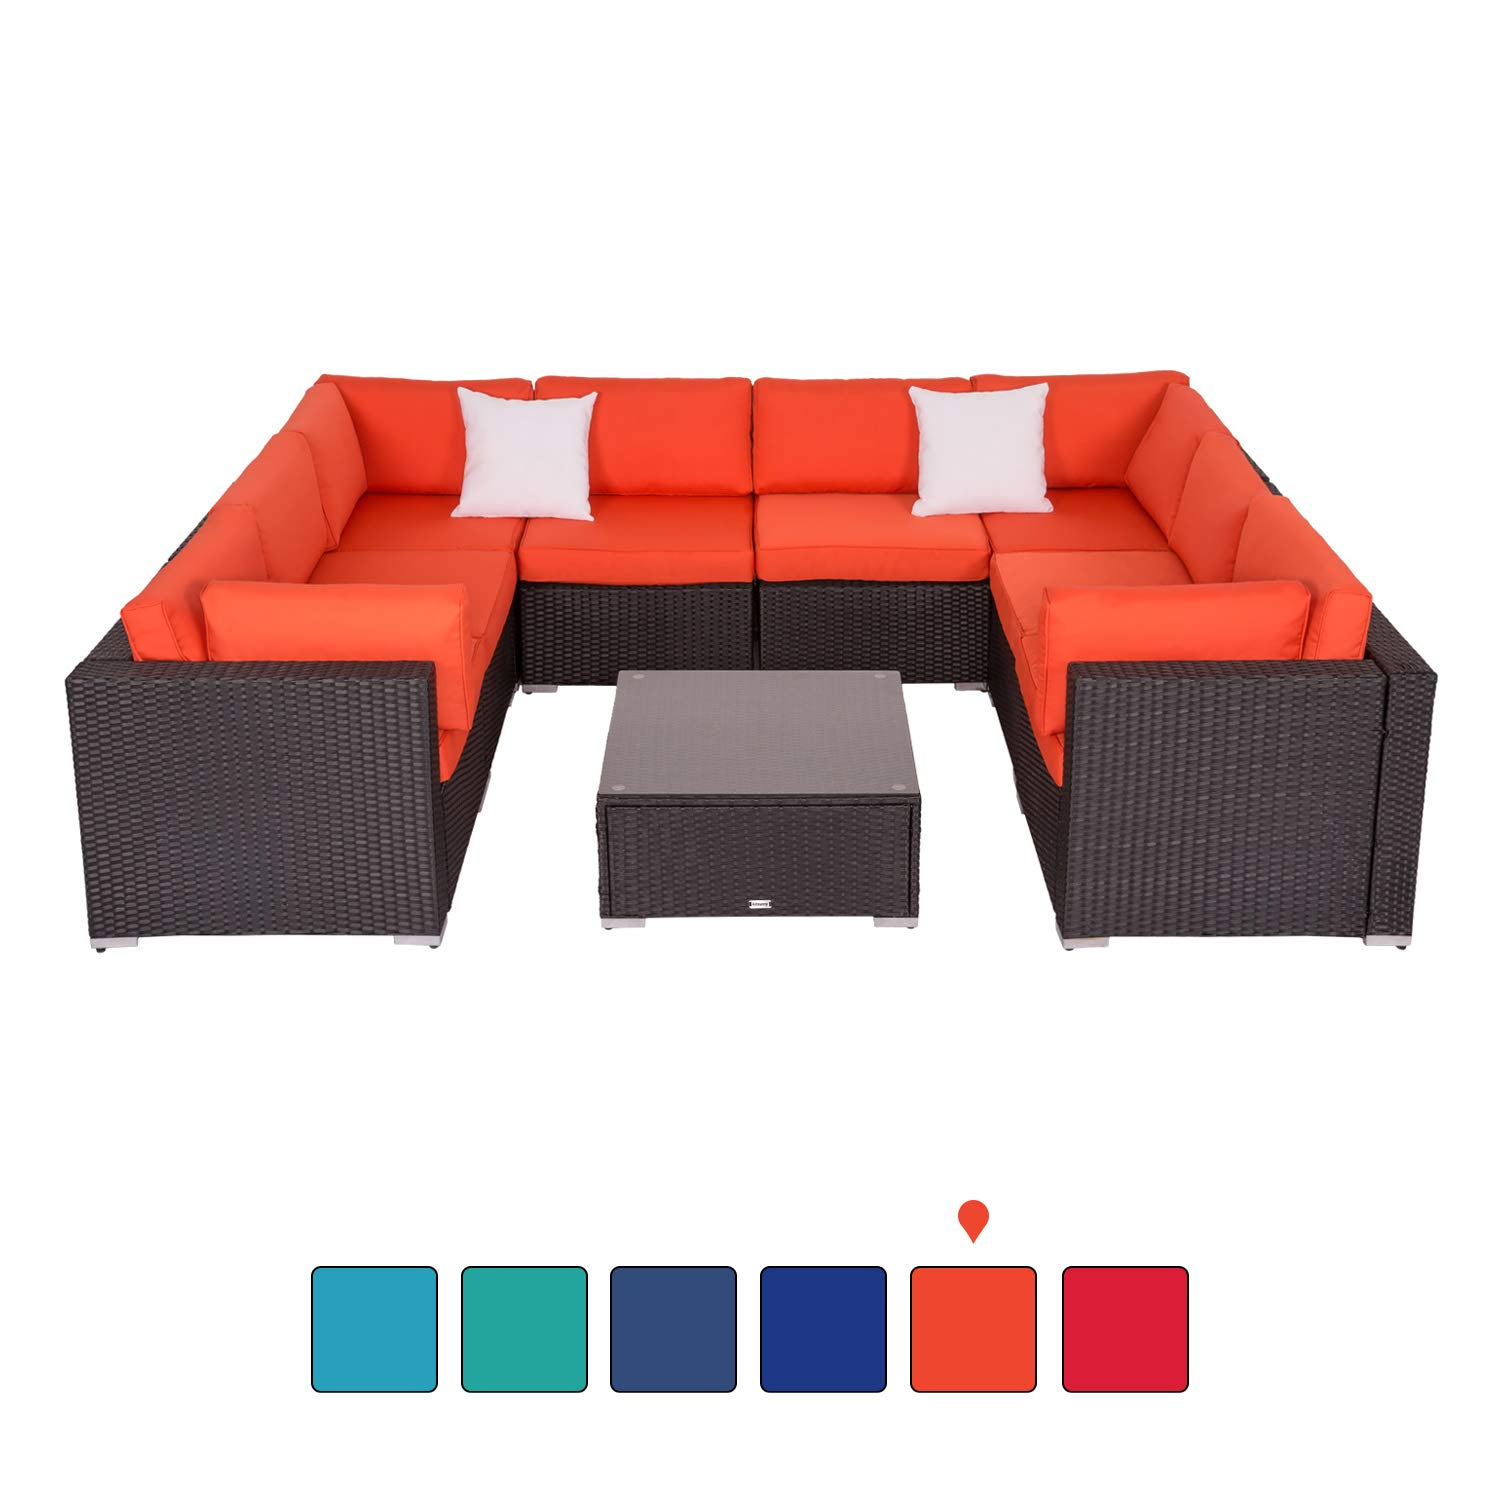 Peach Tree 9 PCs Outdoor Patio PE Rattan Wicker Sofa Sectional Furniture with 2 Pillows and Tea Table